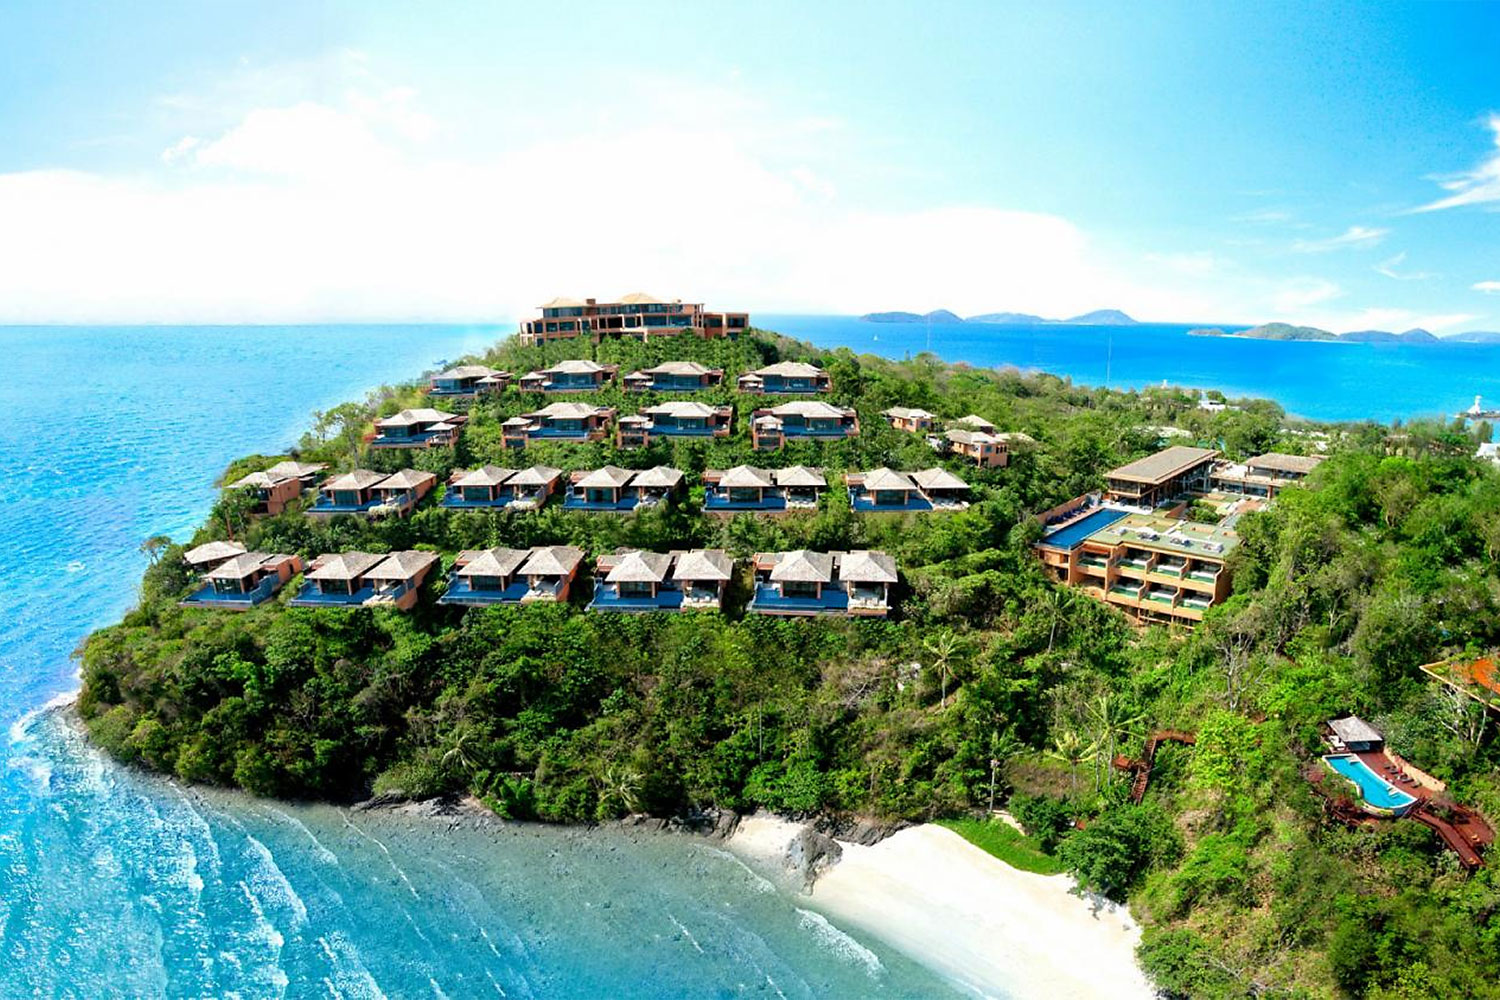 Pool villas at the Sri Panwa Phuket resort are seen on a hill overlooking the Andaman Sea in the island's Muang district. A petition has been submitted to the DSI by an anti-corruption activist raising questions over the legality of the land title deeds issued prior to the construction of the luxury hilltop complex. (Photo: Sri Panwa Phuket website)